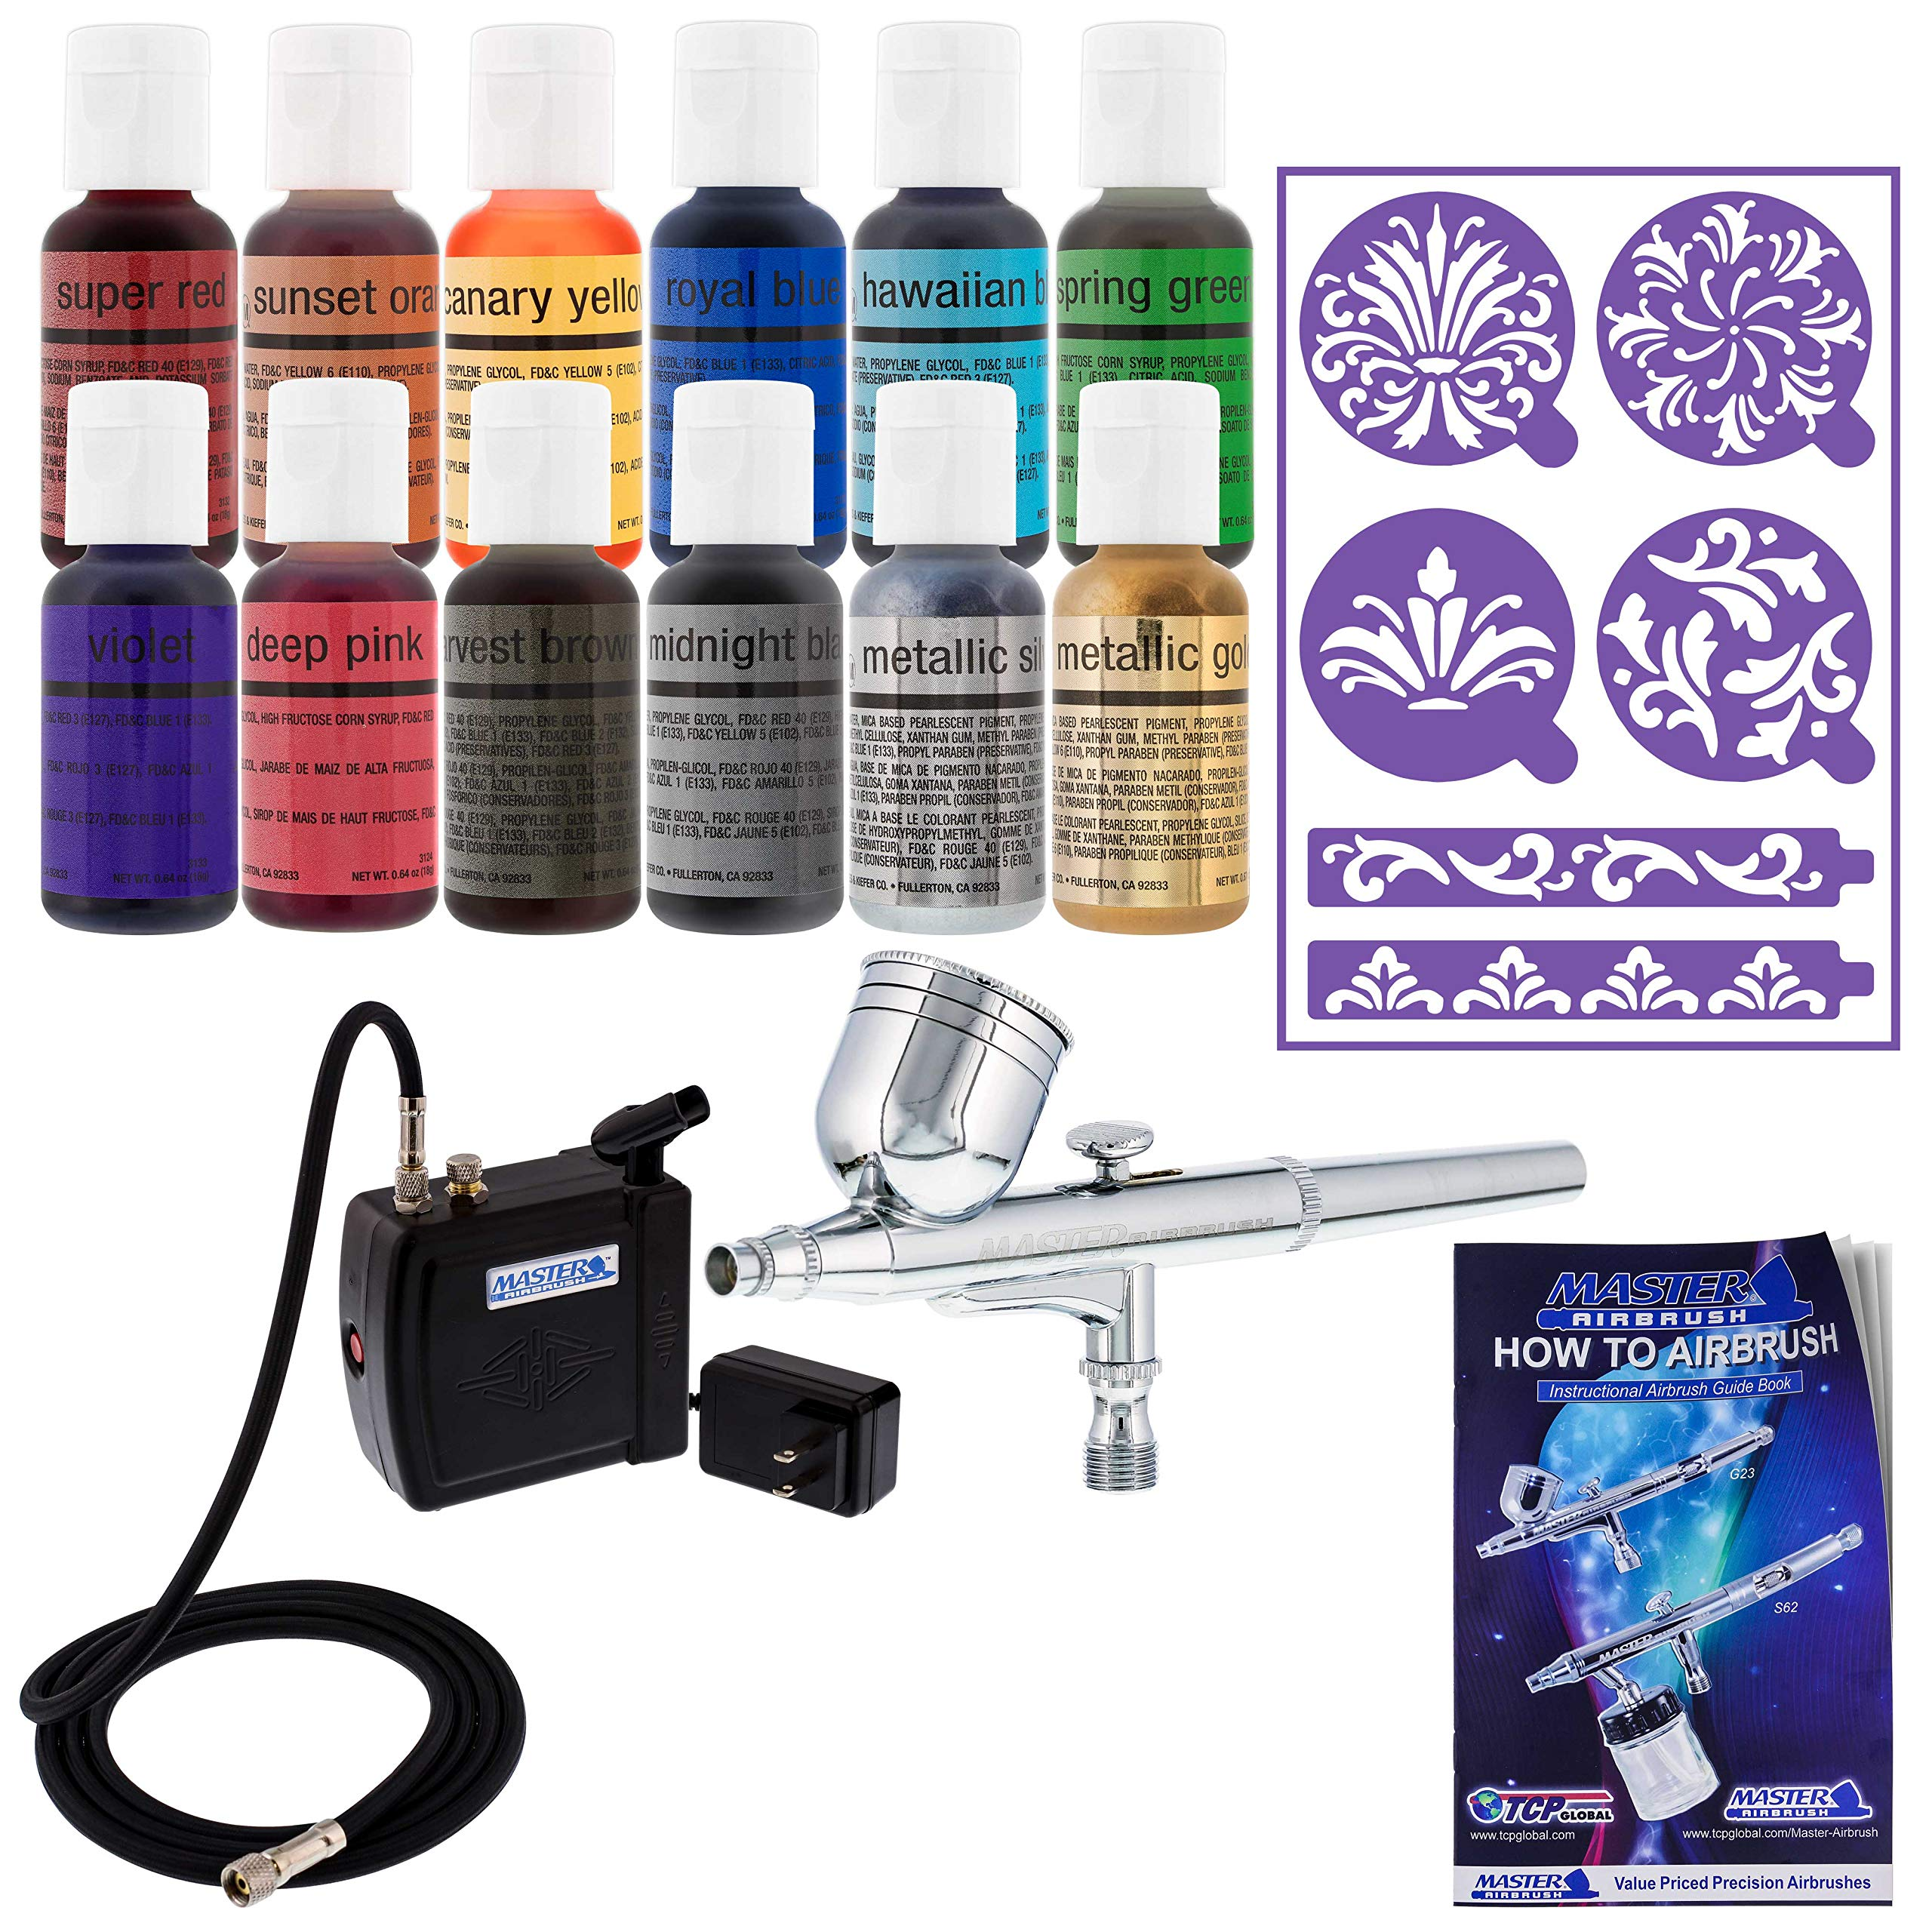 Master Airbrush Cake Decorating Airbrushing System Kit with a Set of 12 Chefmaster Food Colors, Gravity Feed Dual-Action Airbrush, Air Compressor, Wilton Stencils and How-to-Airbrush Guide Booklet by Master Airbrush